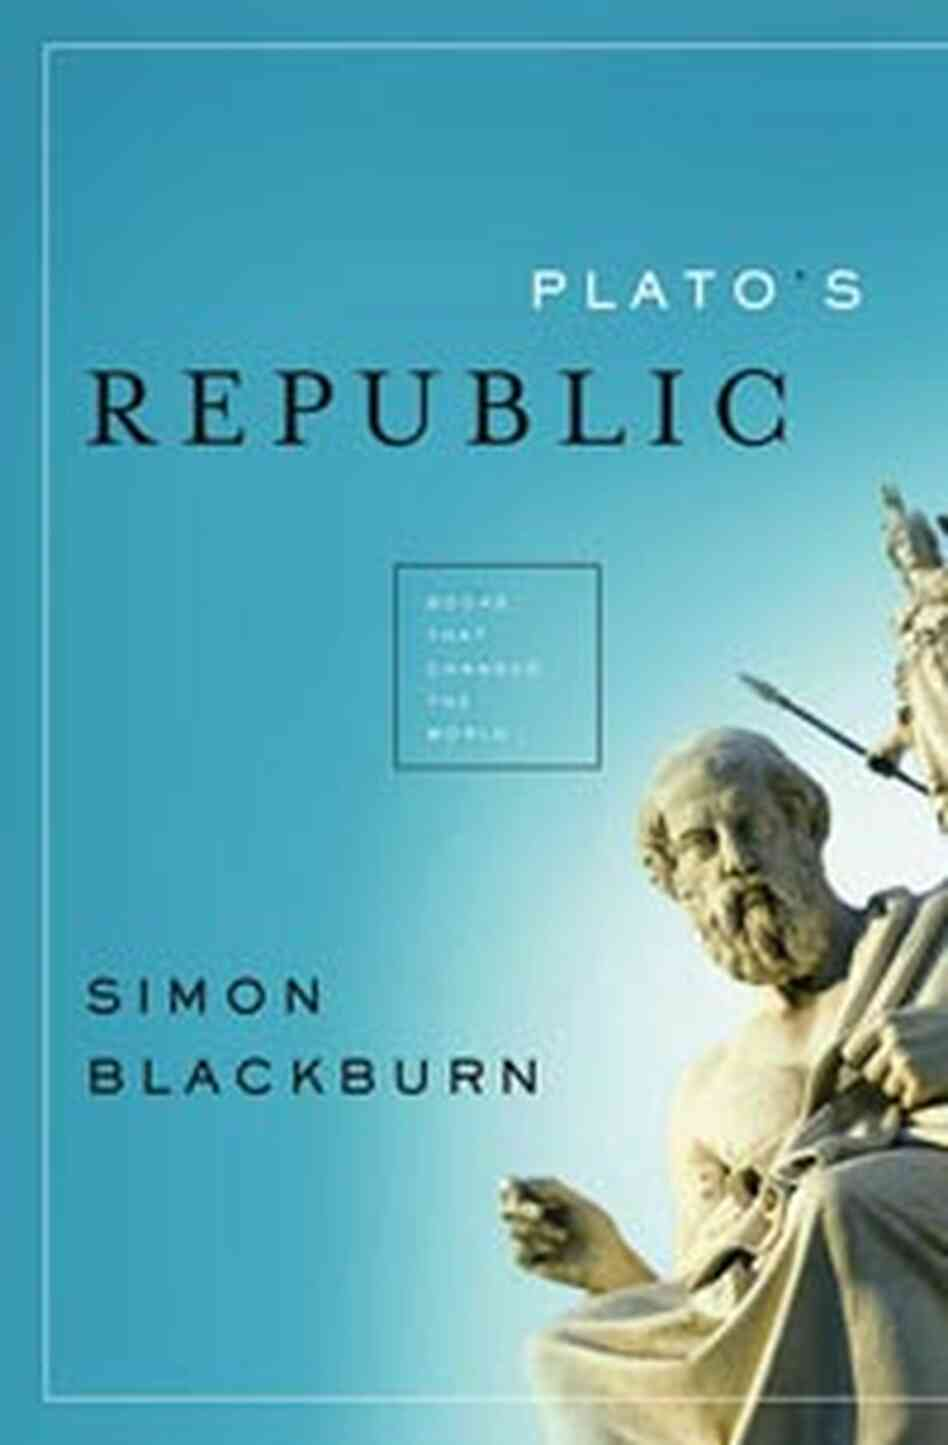 plato s republic book v Free essay: plato's most famous work is undoubtedly the republic it has weathered the test of time to provide us with the most influential philosophical.